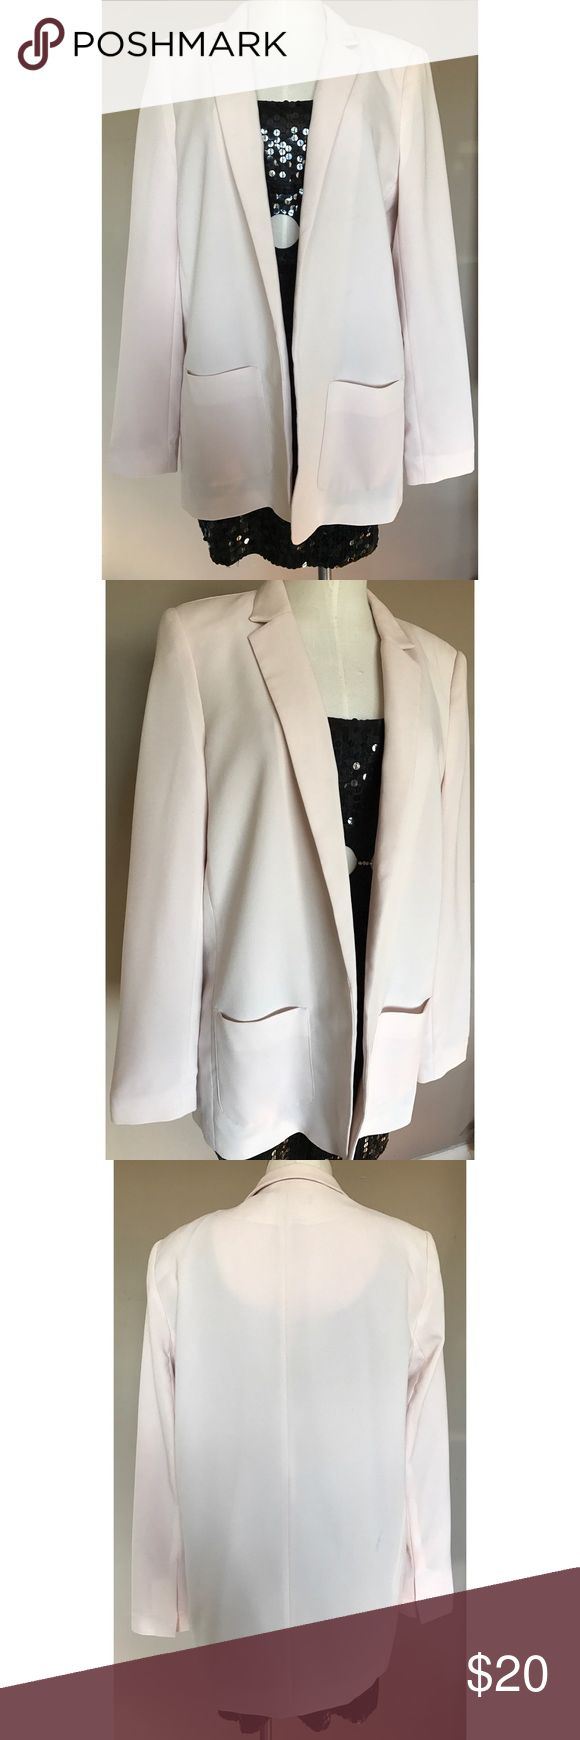 🚨FLASH SALE 50% OFF🚨 Forever 21 Blush Blazer 🚨SALE 50% OFF! Price Already Discounted🚨 PreOwned. Good Condition. Perfect to pair with Nudes and Denim. Fall Color Trend. Forever 21 Jackets & Coats Blazers